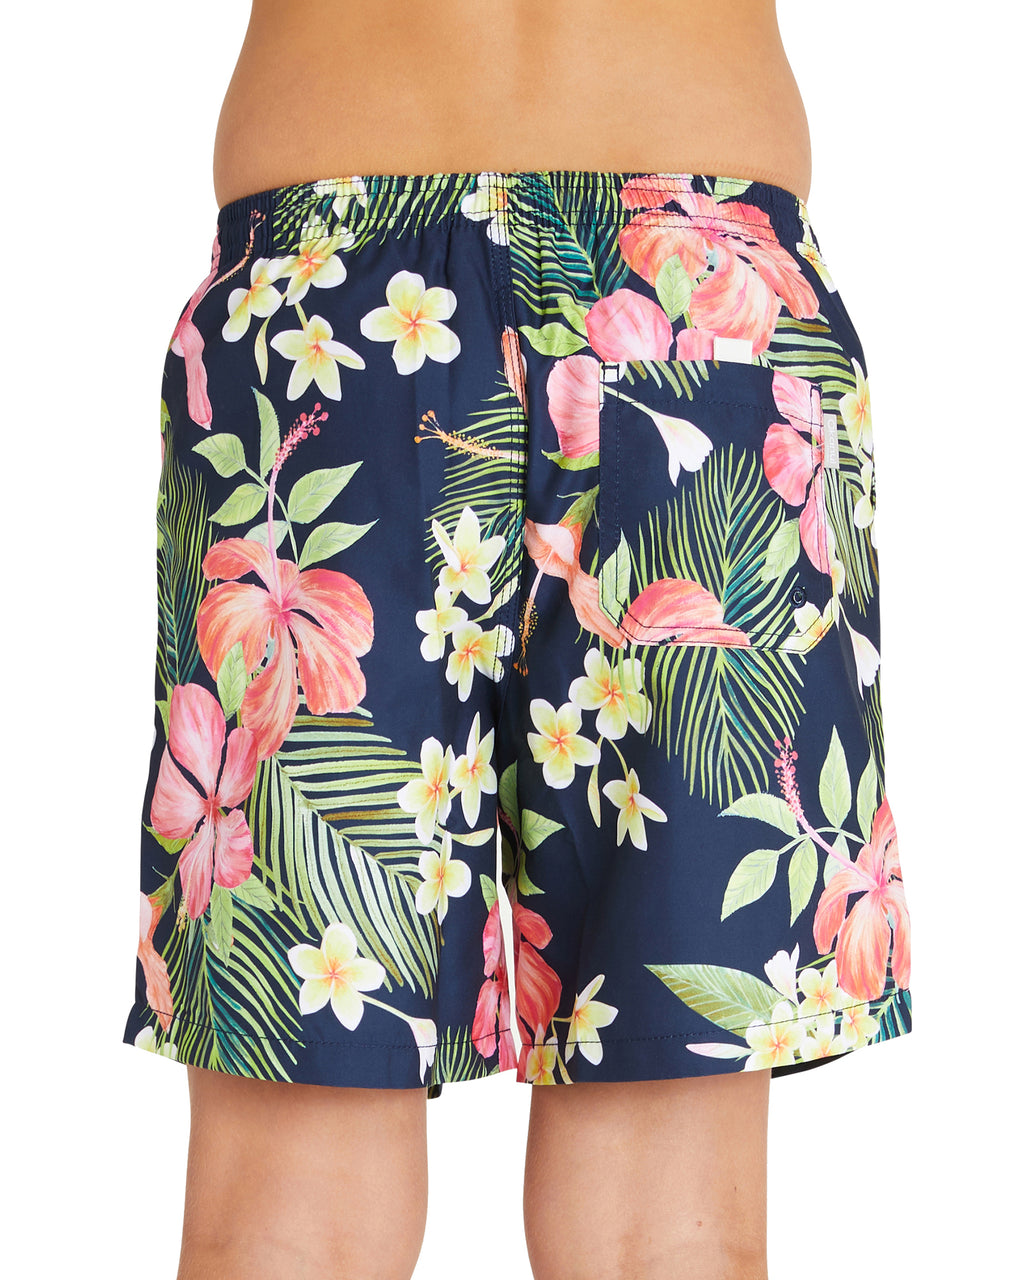 Kids Swim Short - Tropic Shores - Navy